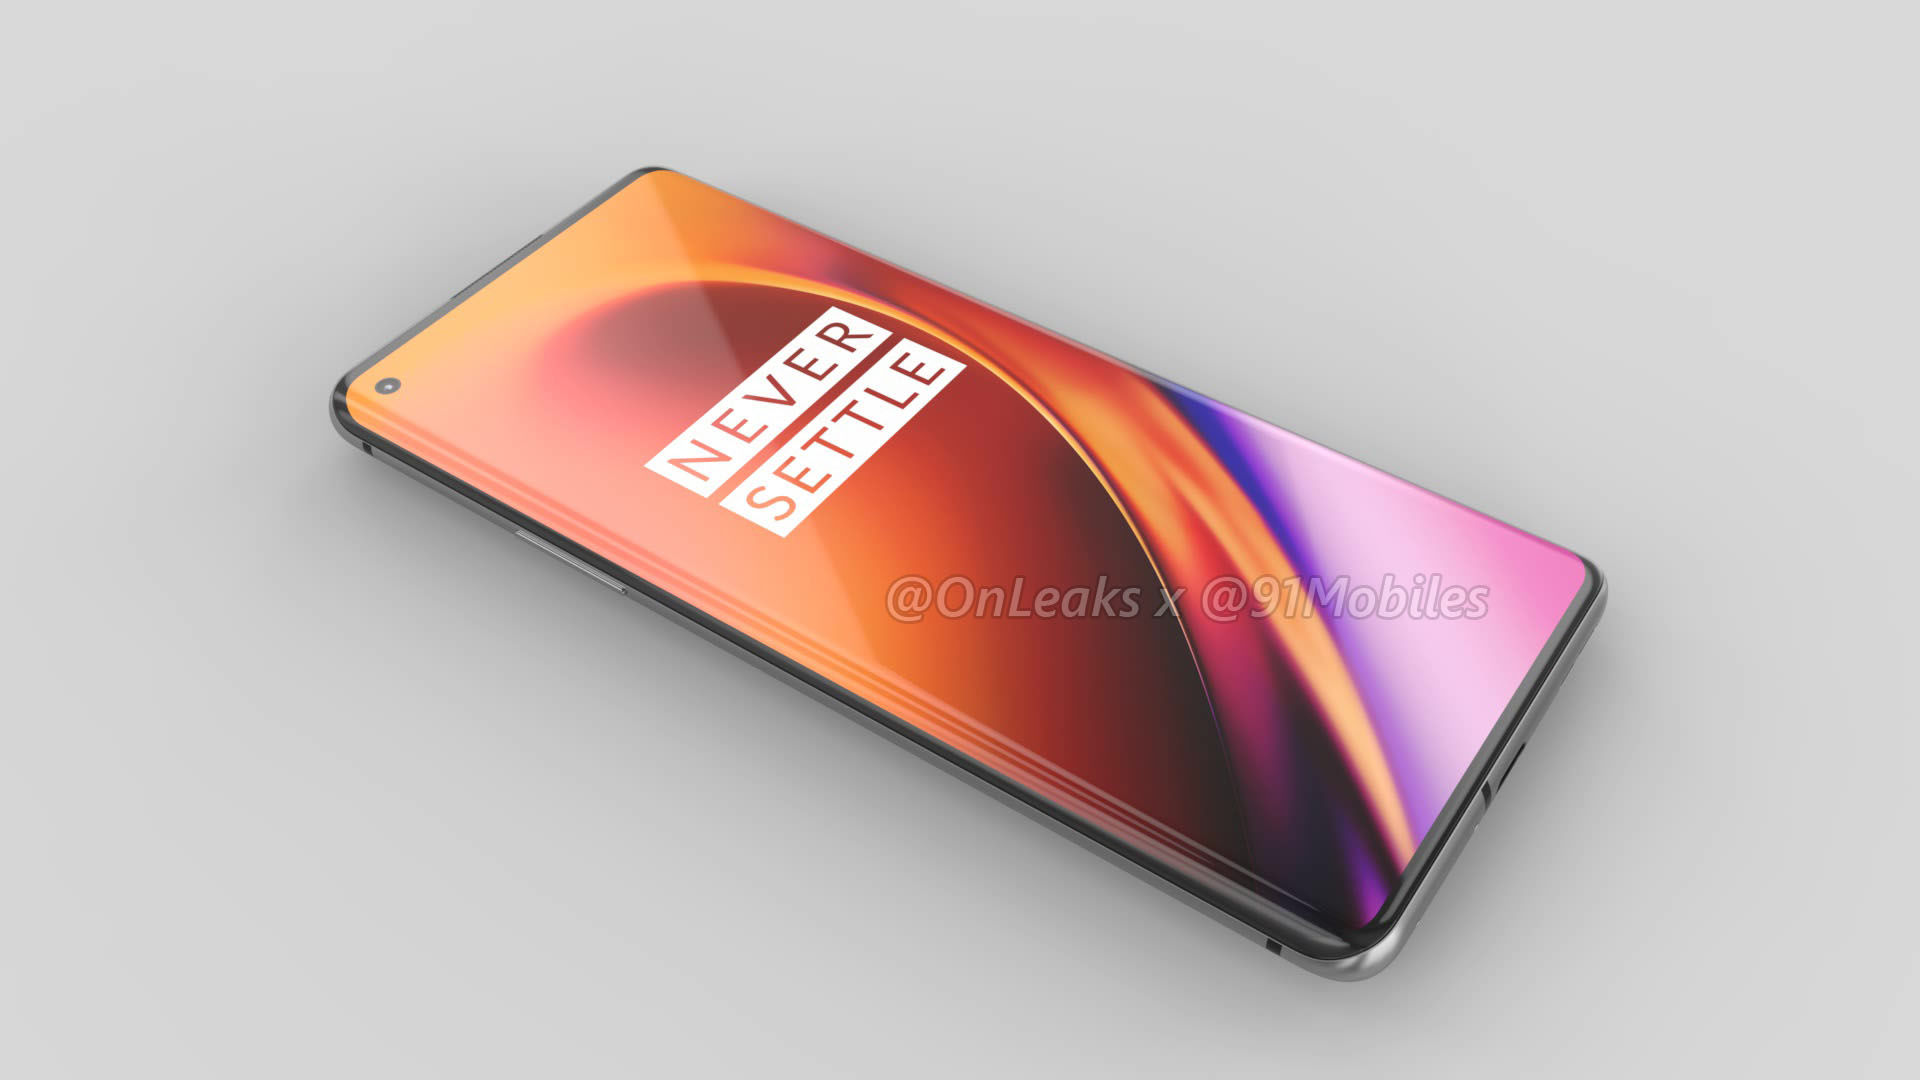 Exclusive Oneplus 8 Pro Renders Reveal Quad Camera Setup And Punch Hole Display 91mobiles Com